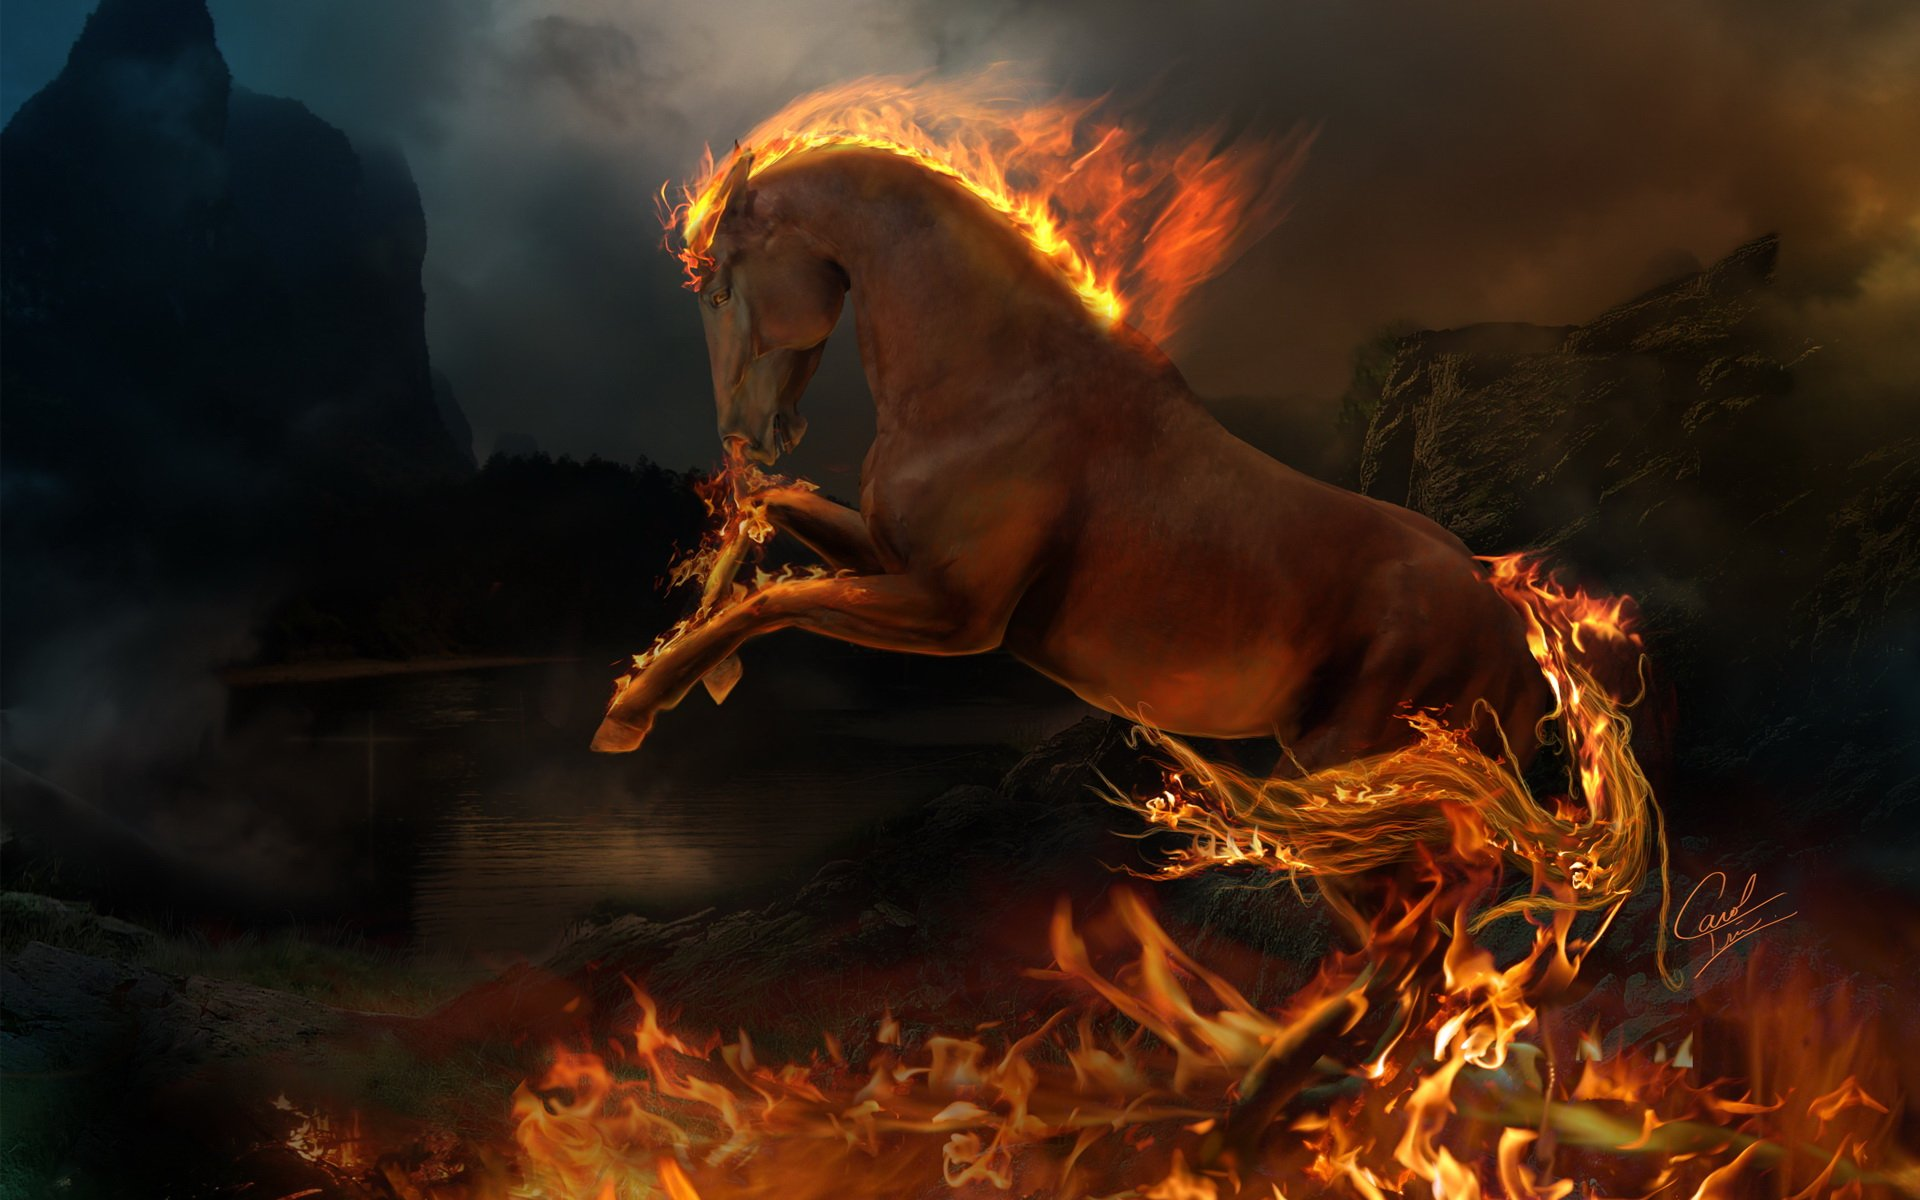 41 Fire Horse Wallpaper Hd On Wallpapersafari Fire horse chinese new year free hd